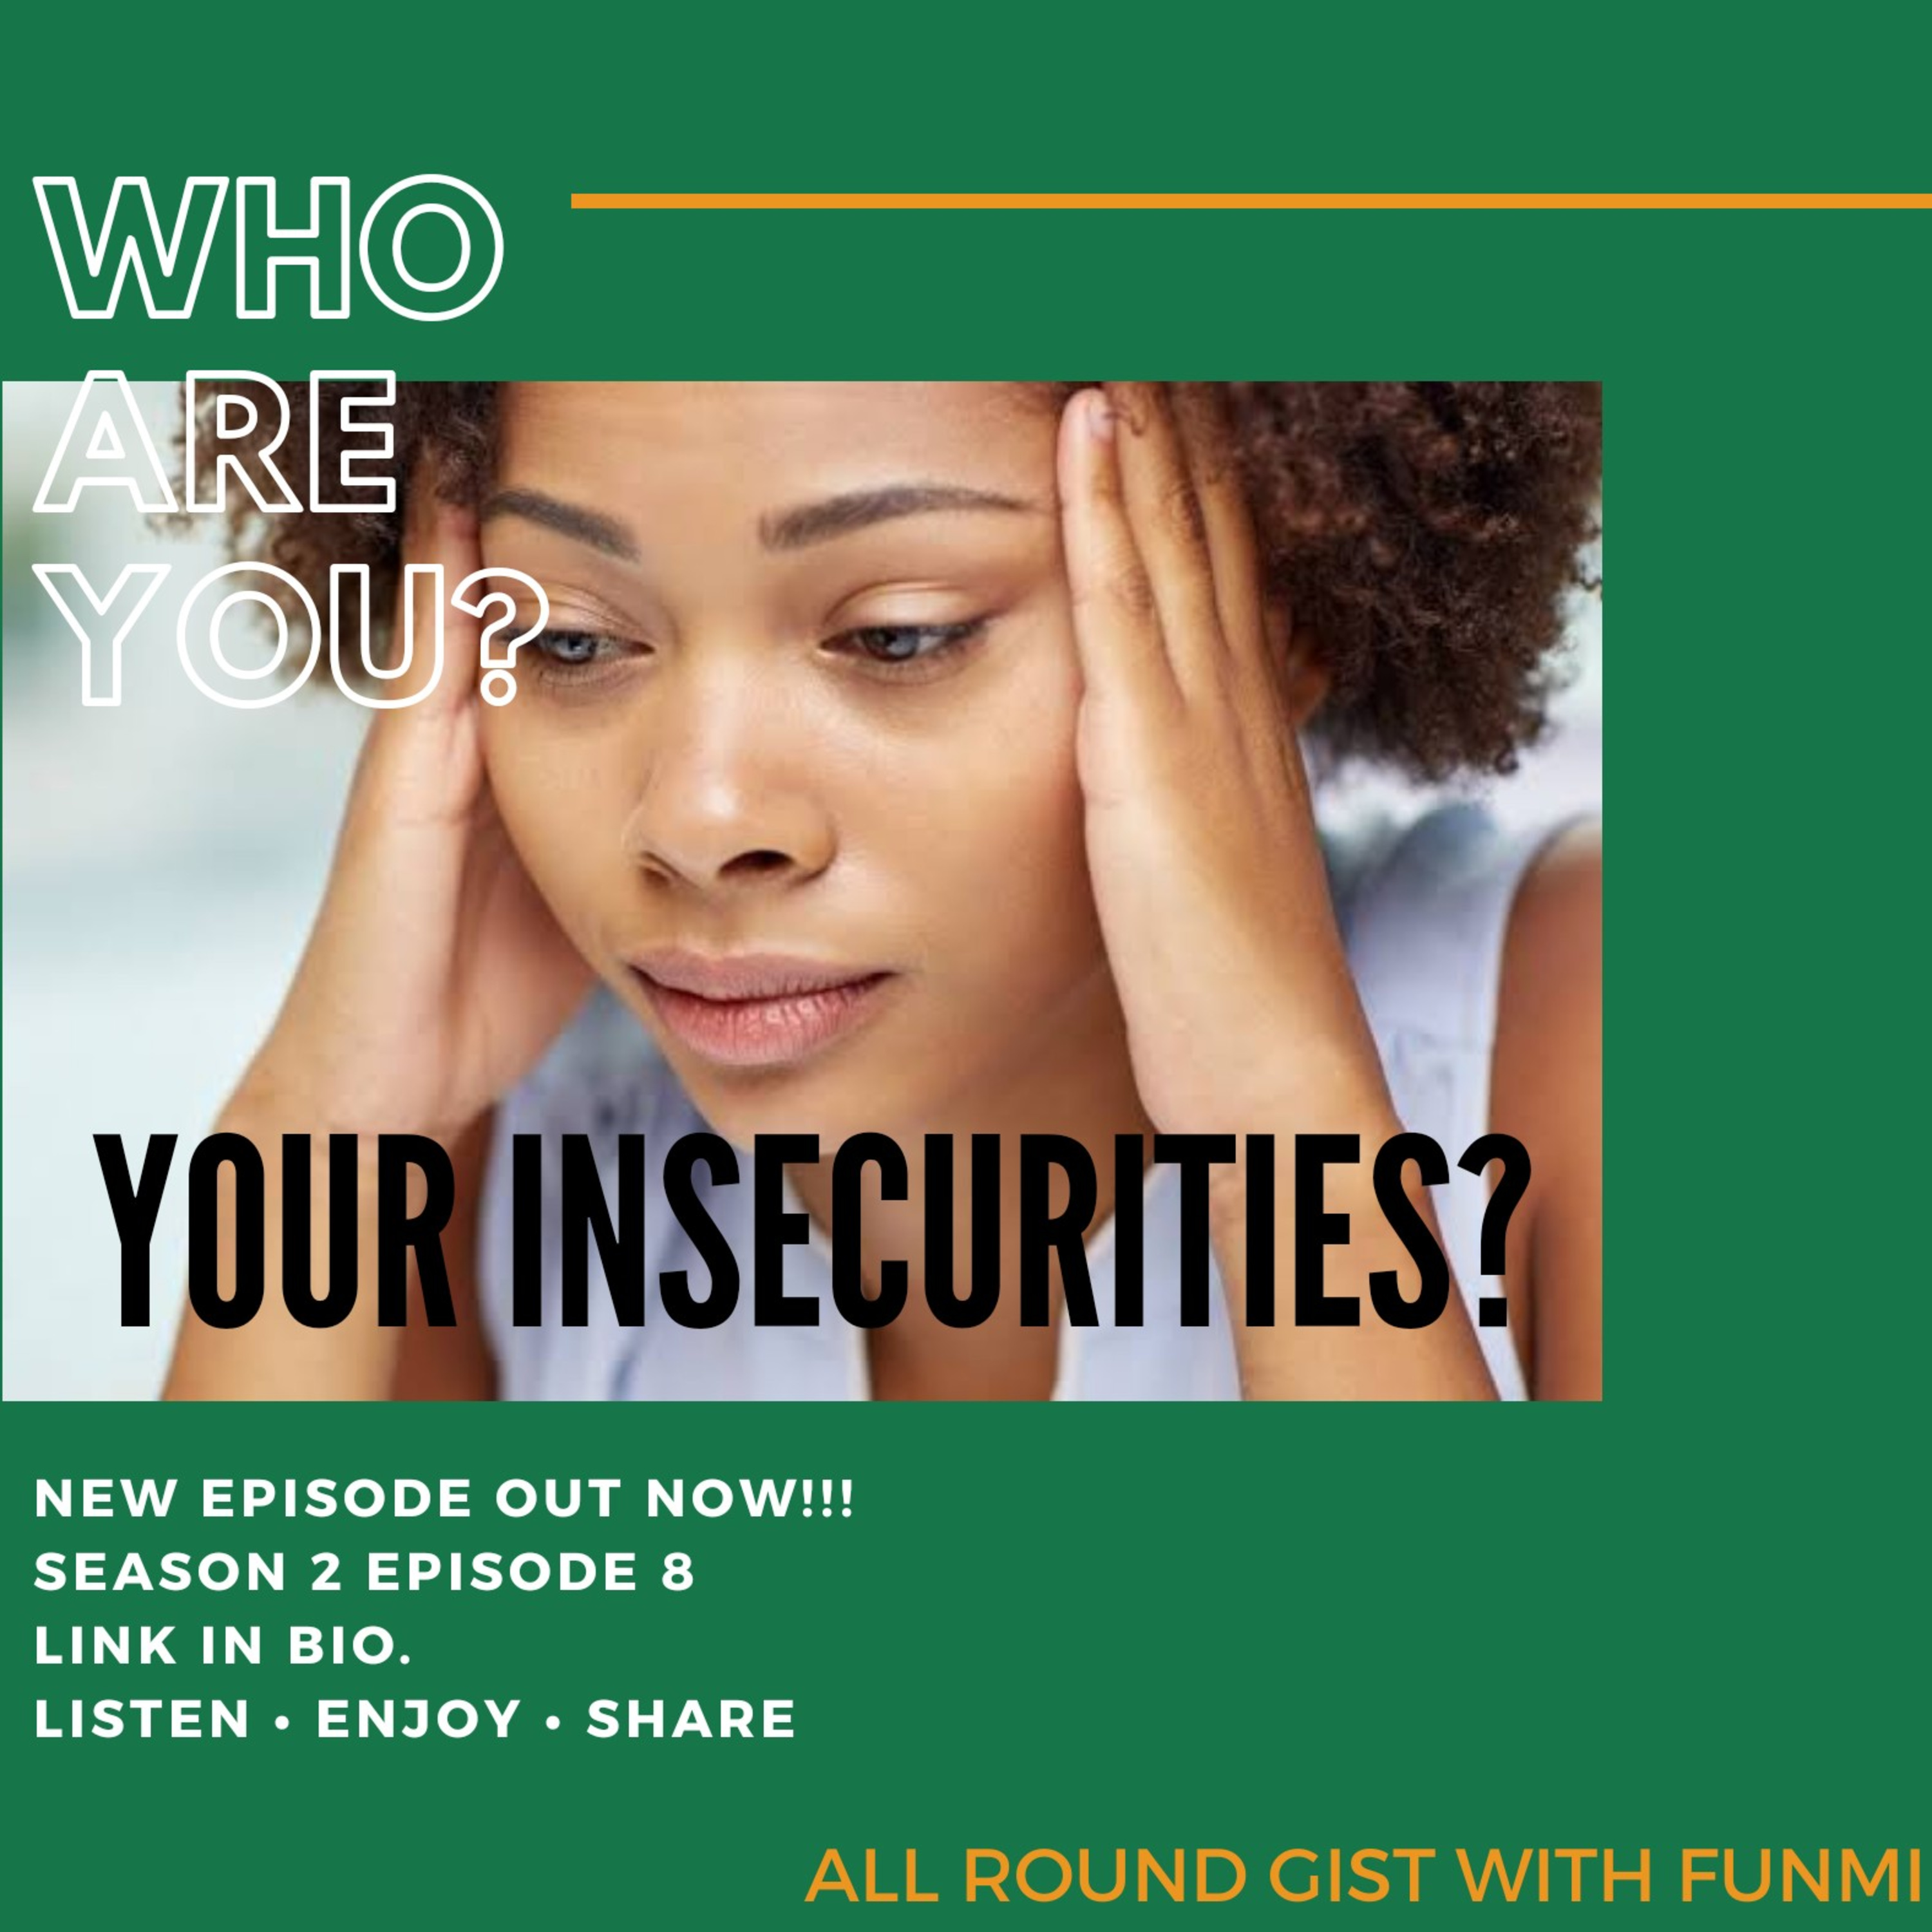 All Round Gist with Funmi on Jamit